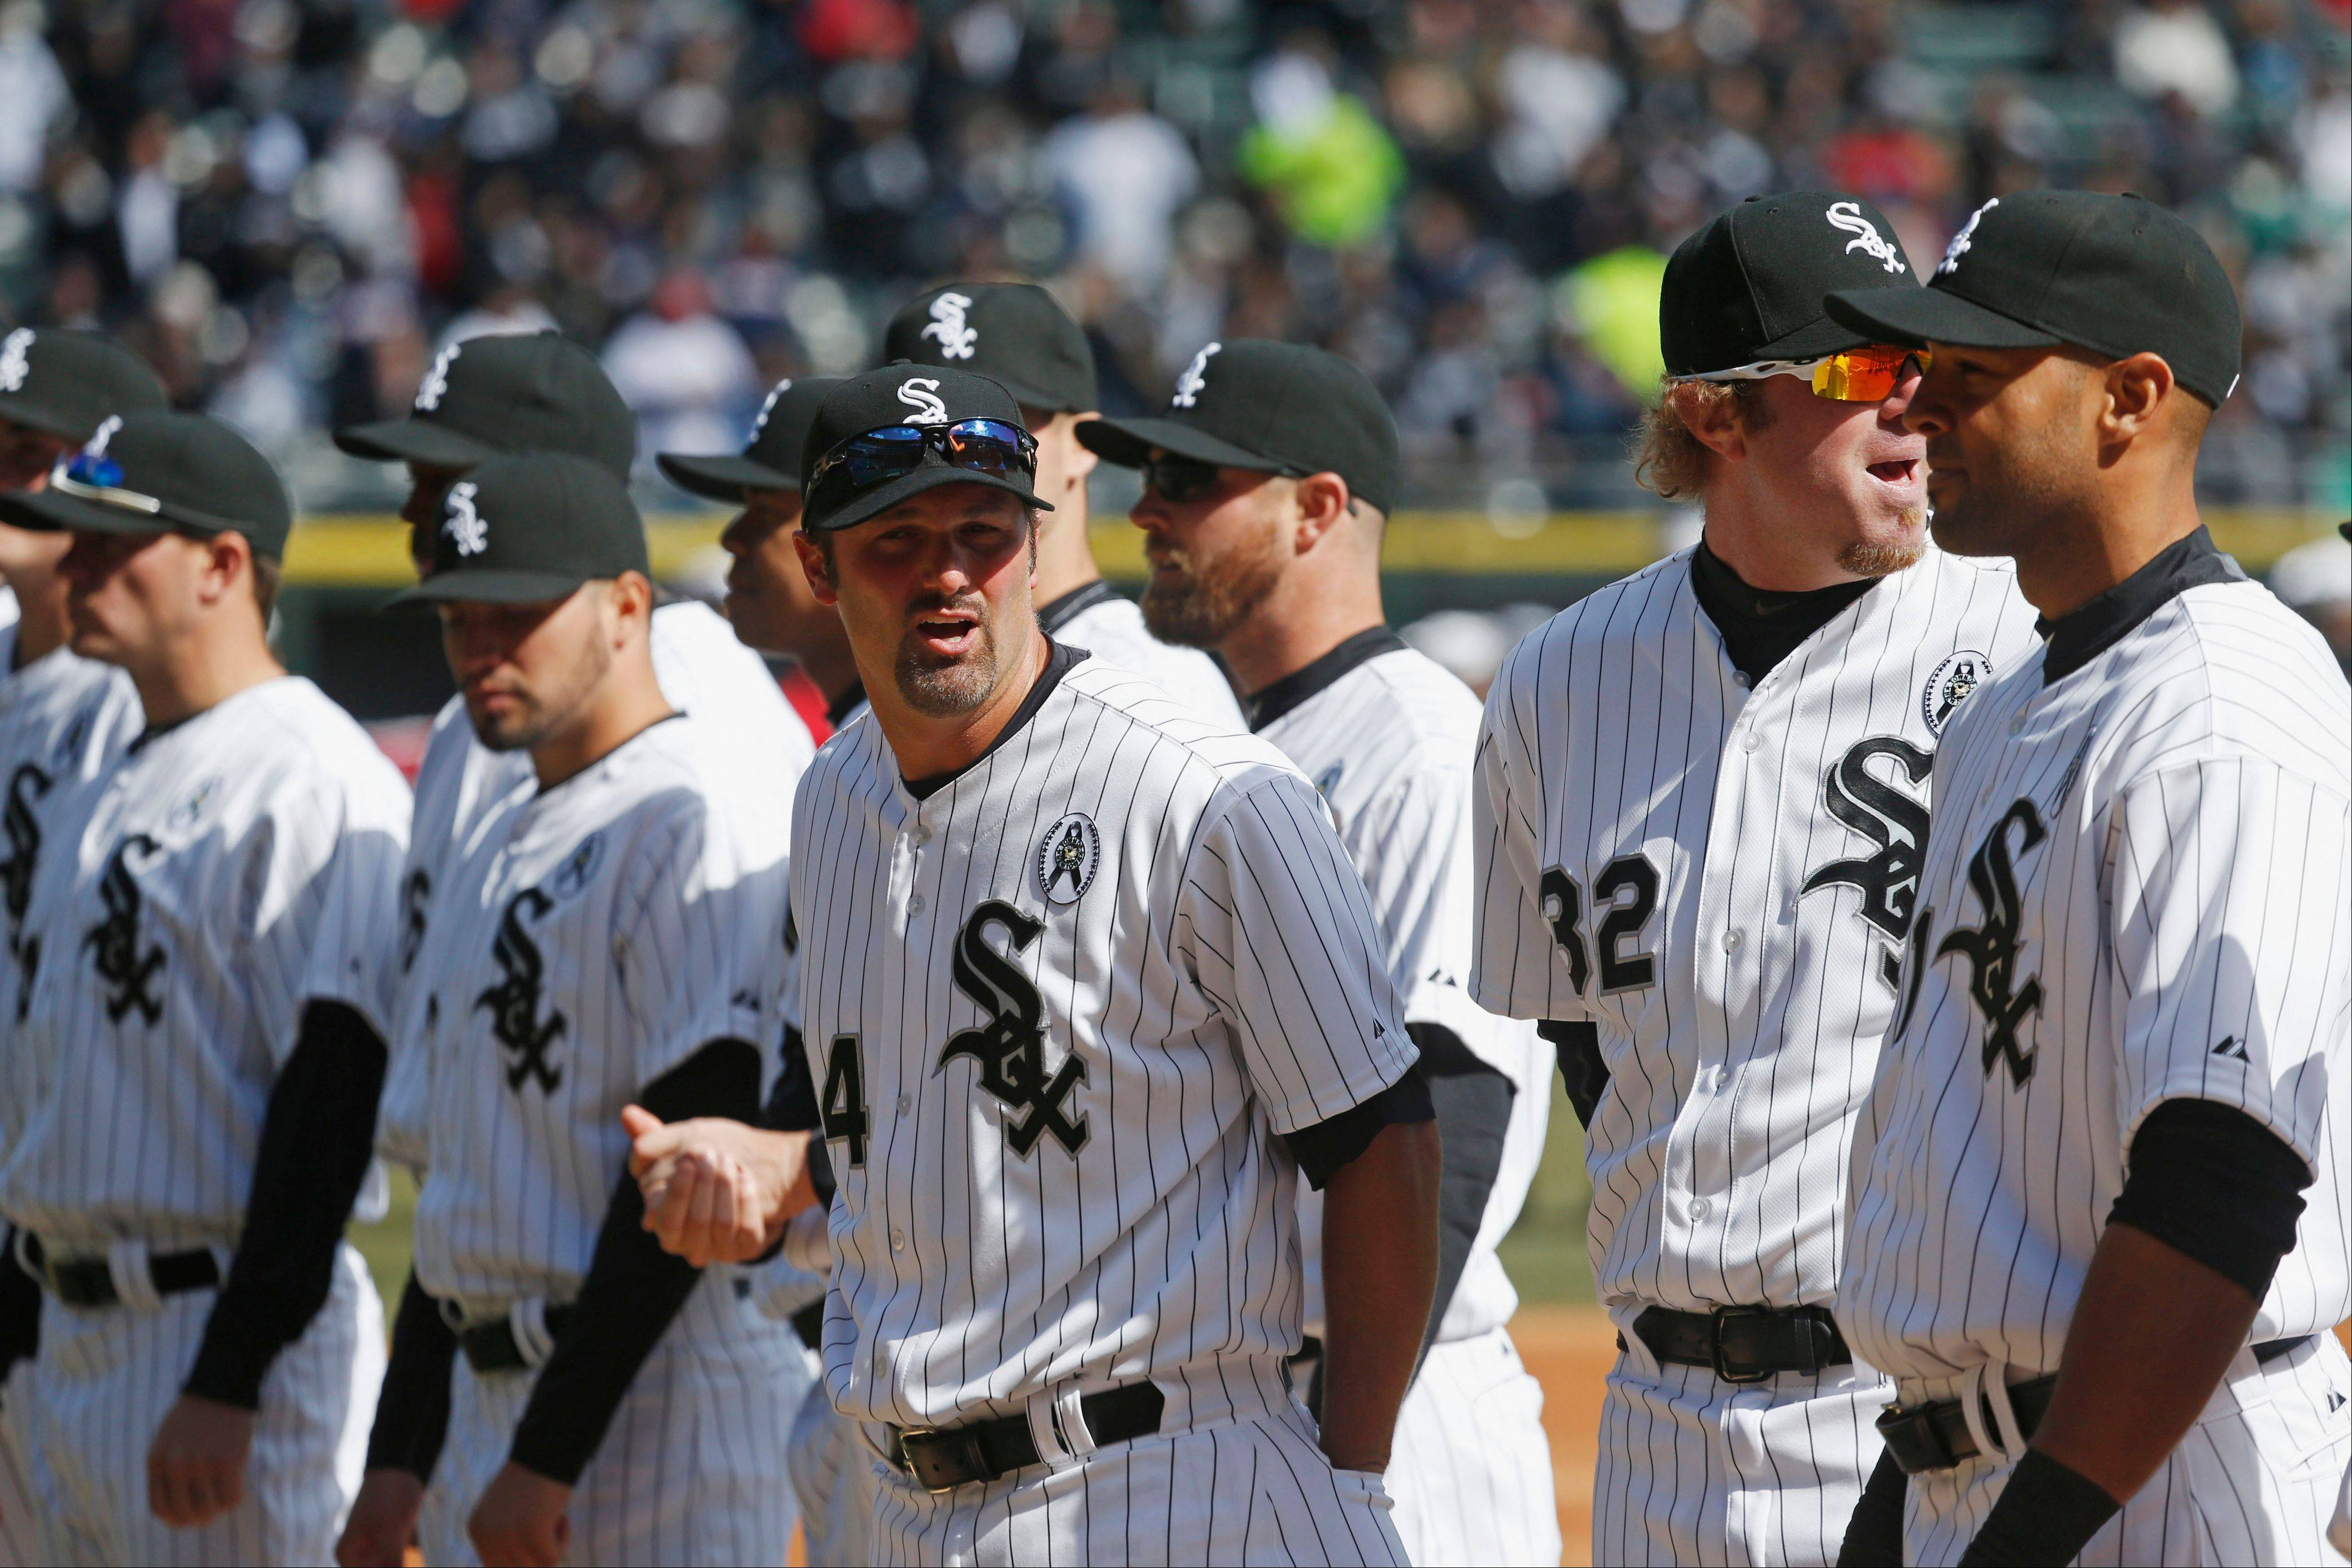 White Sox first baseman Paul Konerko, middle, steps forward after being introduced with teammates Monday before the White Sox' season opener against the Kansas City Royals at U.S. Cellular Field.